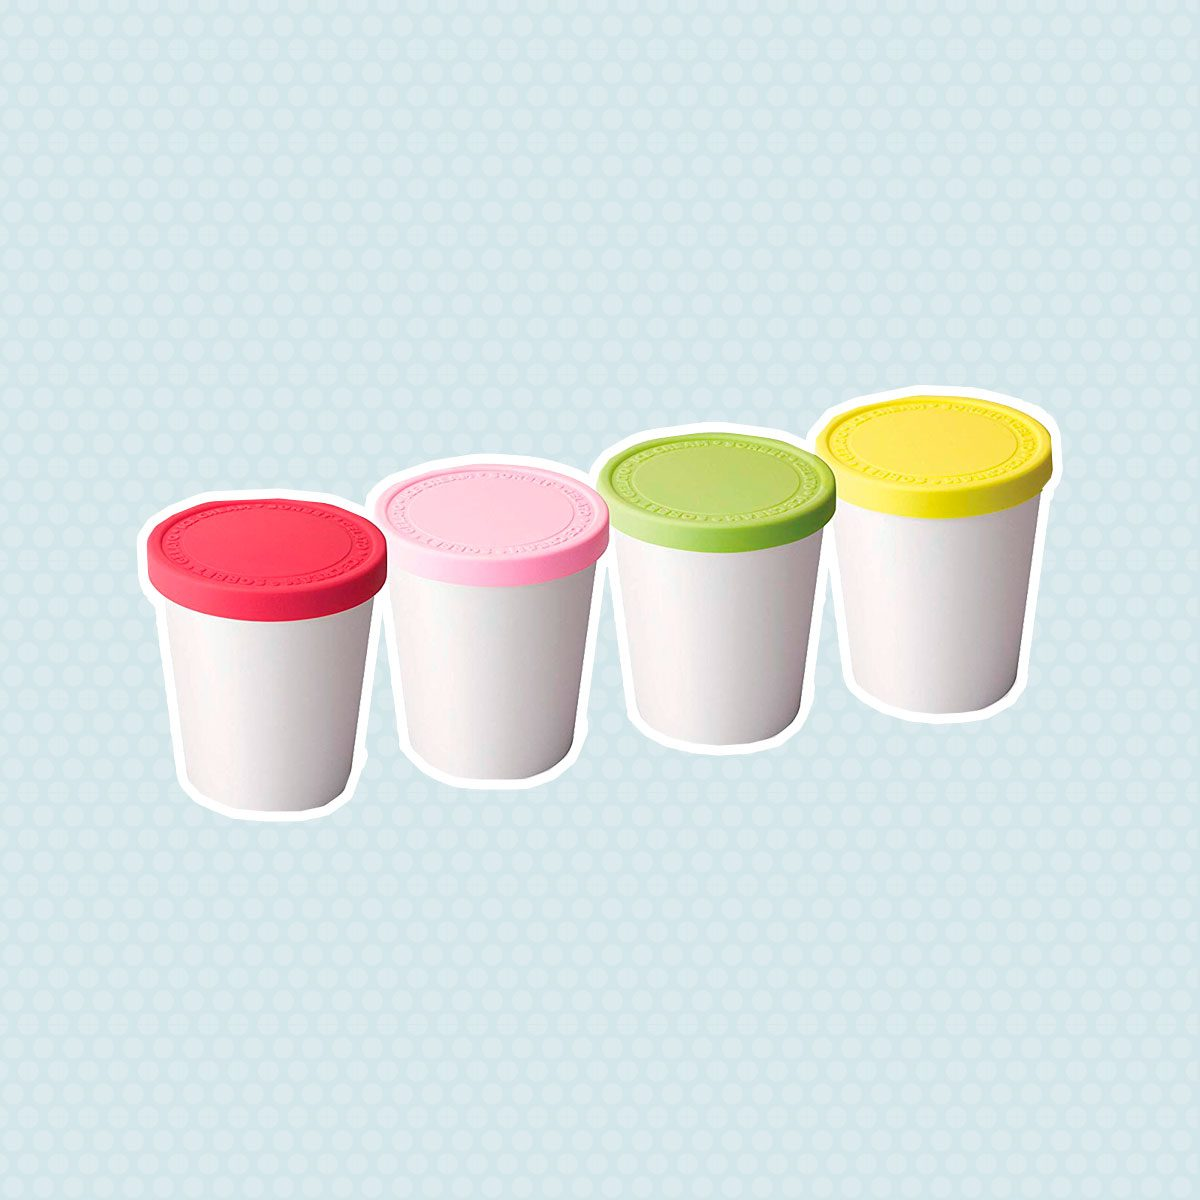 Tovolo Ice Cream Tubs